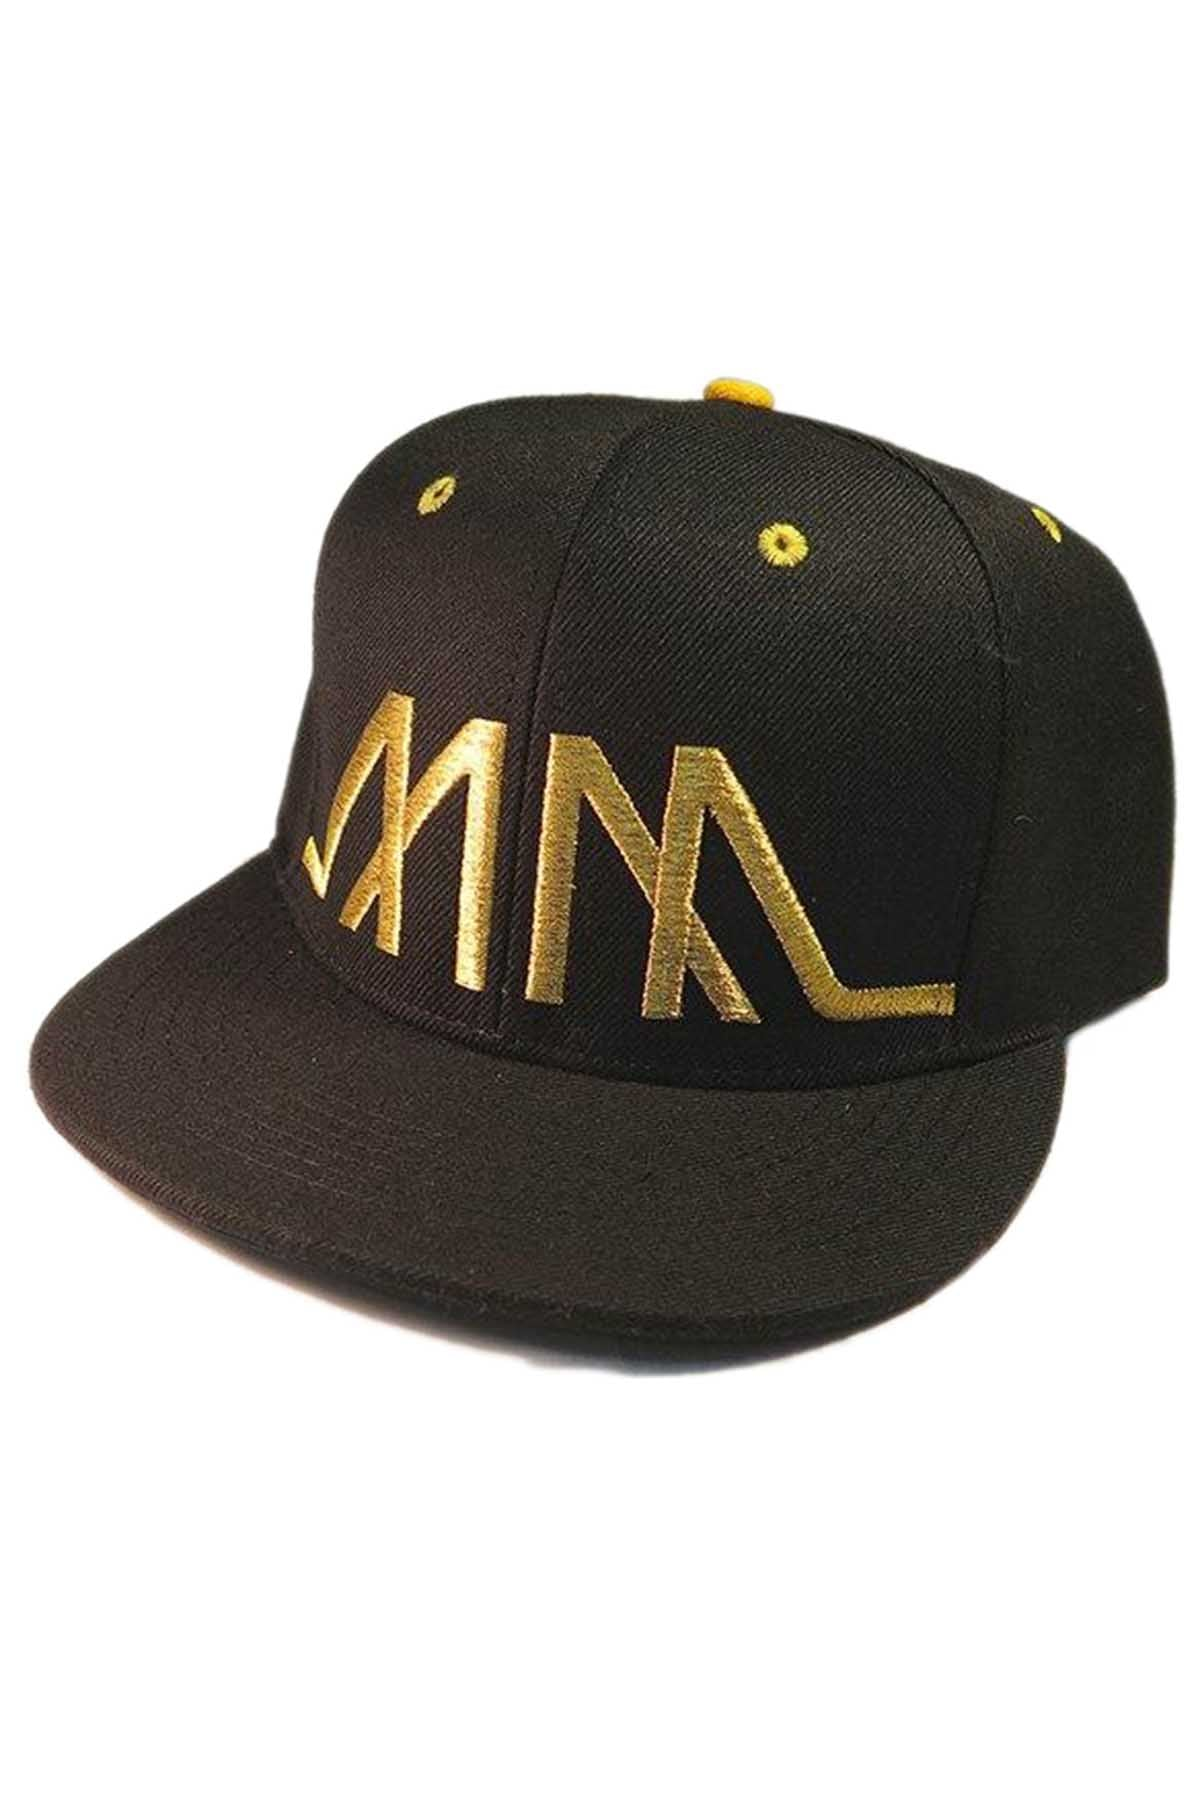 Marco Marco Gold Embroidered MM Snapback